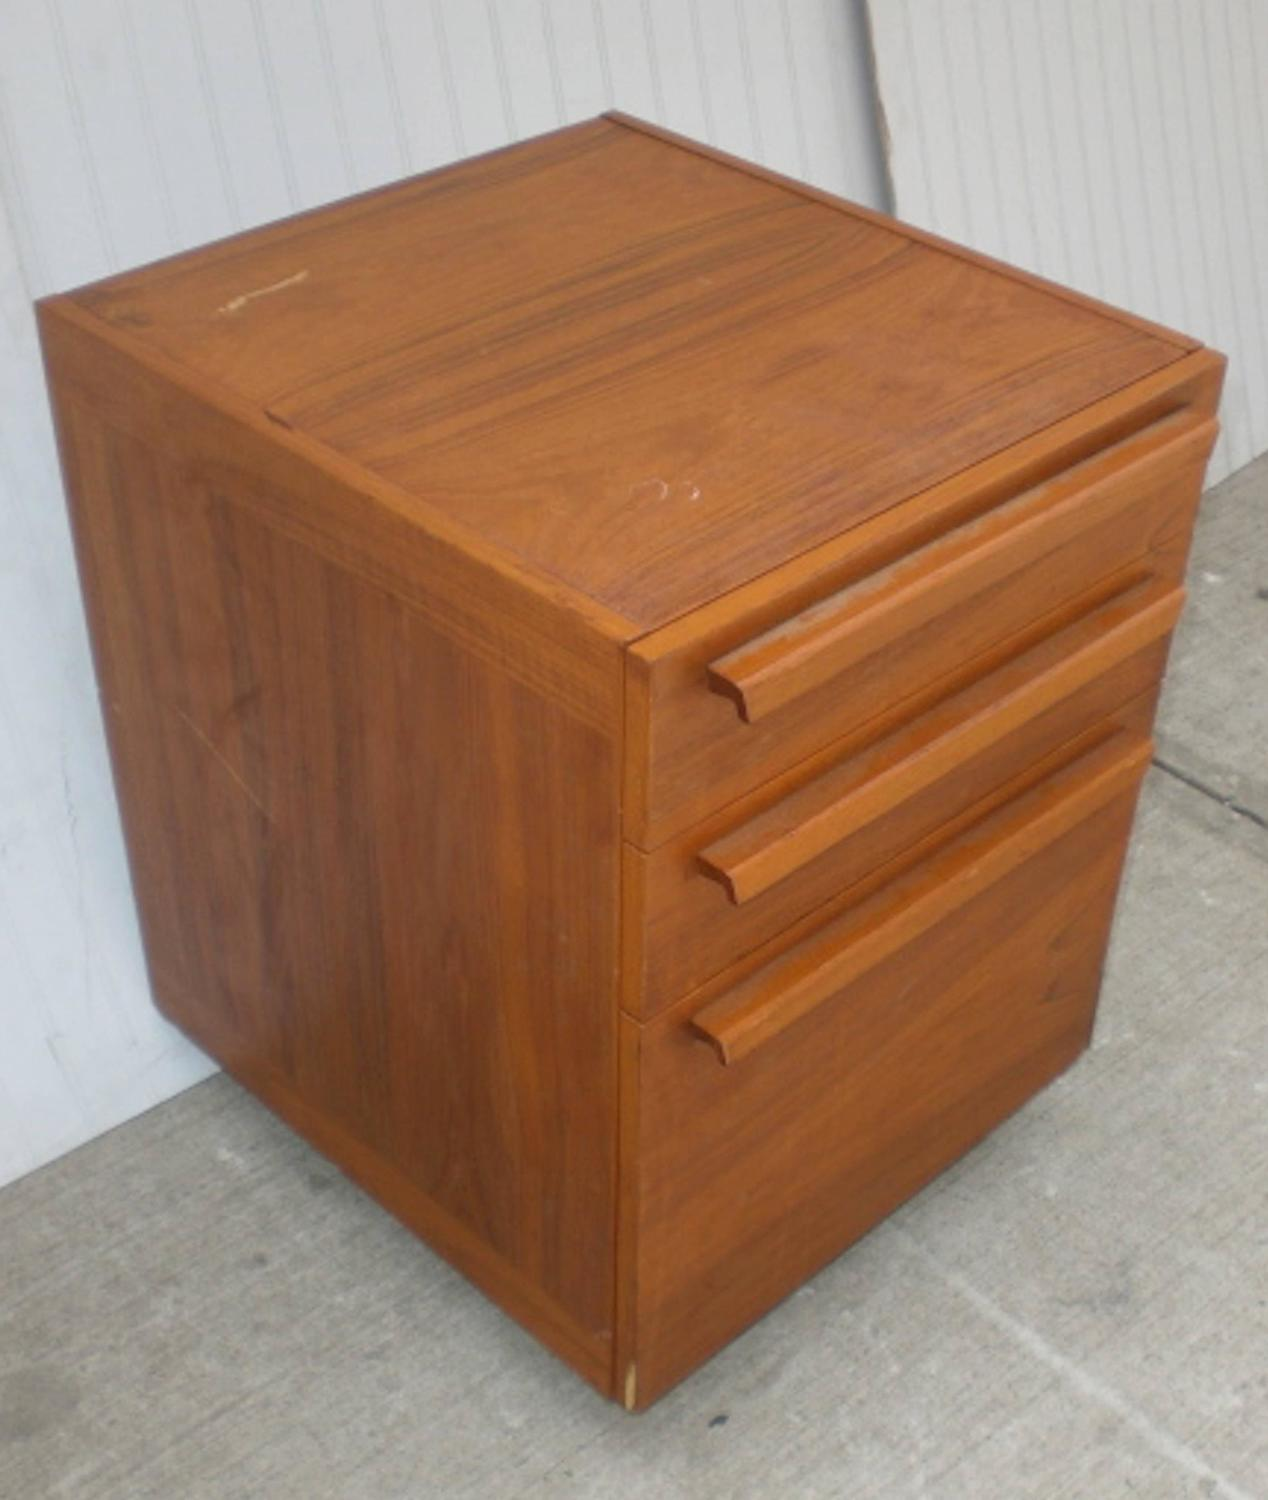 Marvelous photograph of Teak File Cabinet on Wheels For Sale at 1stdibs with #804929 color and 1268x1500 pixels